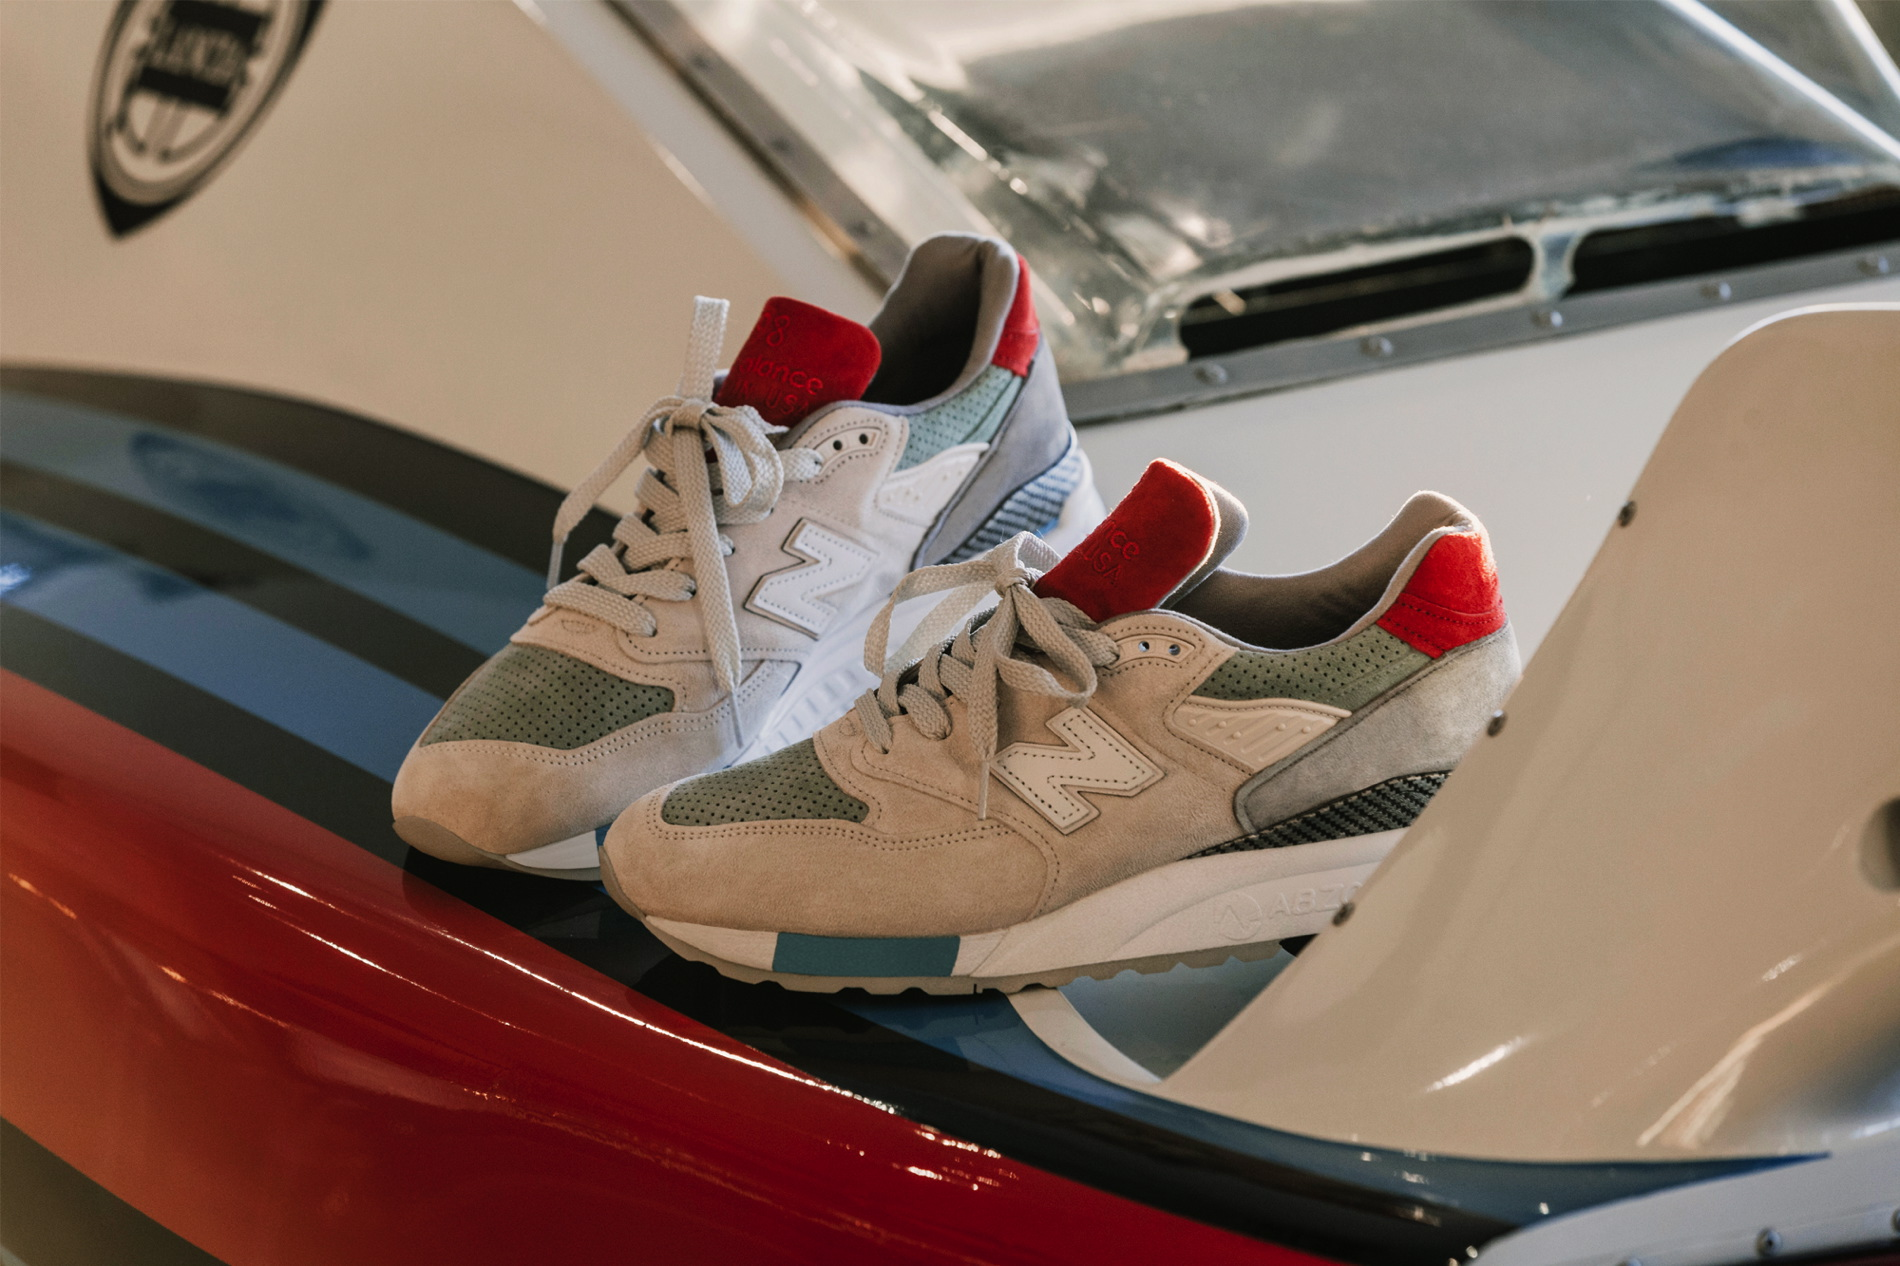 Cool Shoes Concepts X New Balance Grand Tourer